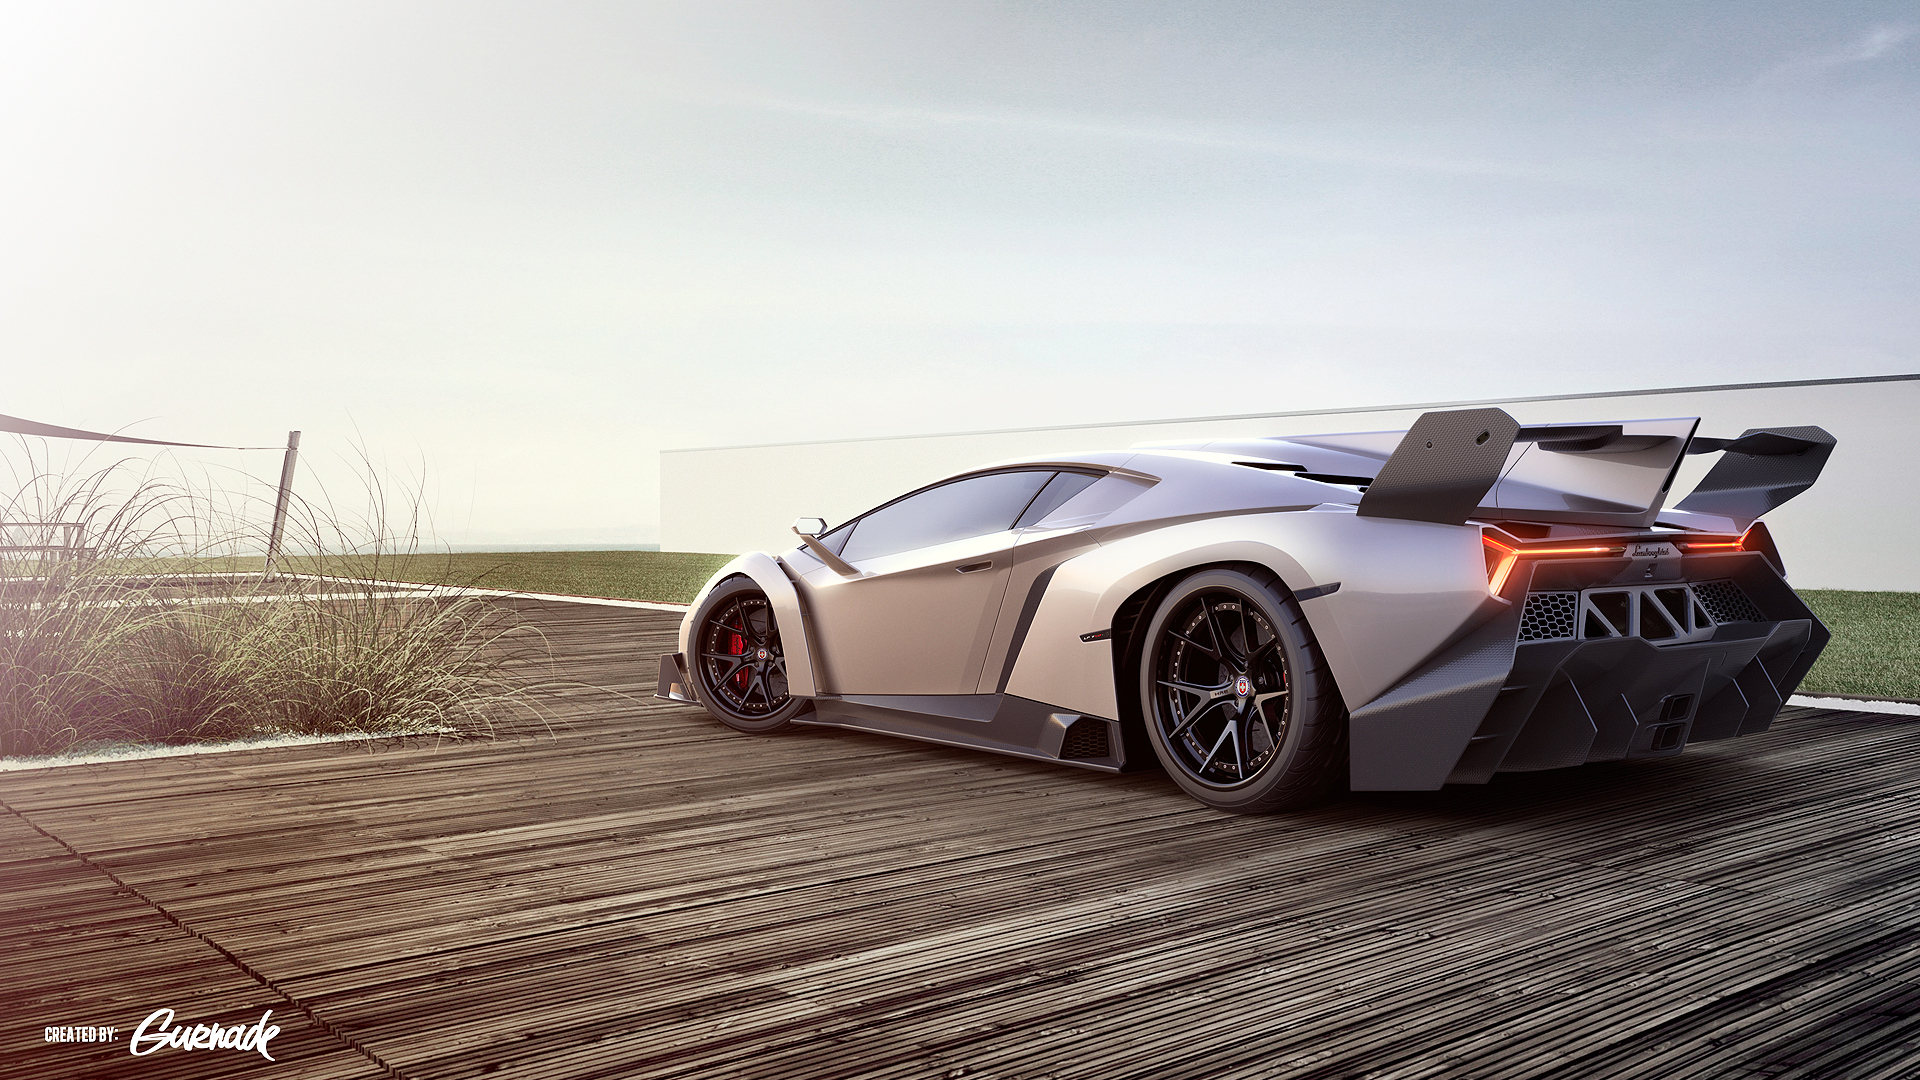 Lamborghini Veneno Sports Car Exclusive HD Wallpapers 5562 1920x1080